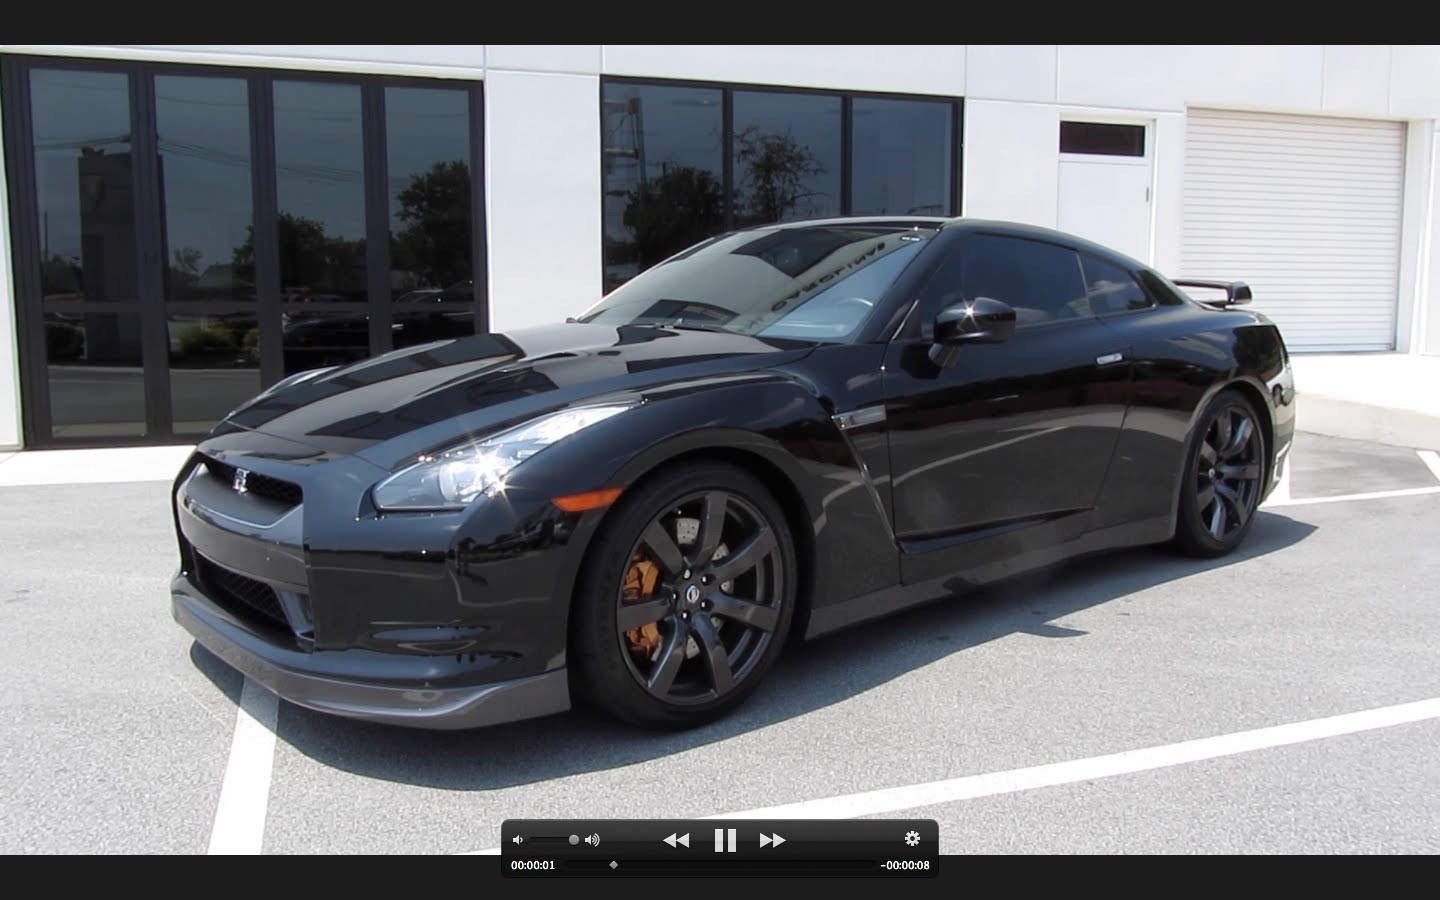 Nissan GT-R 3.8 2010 photo - 2